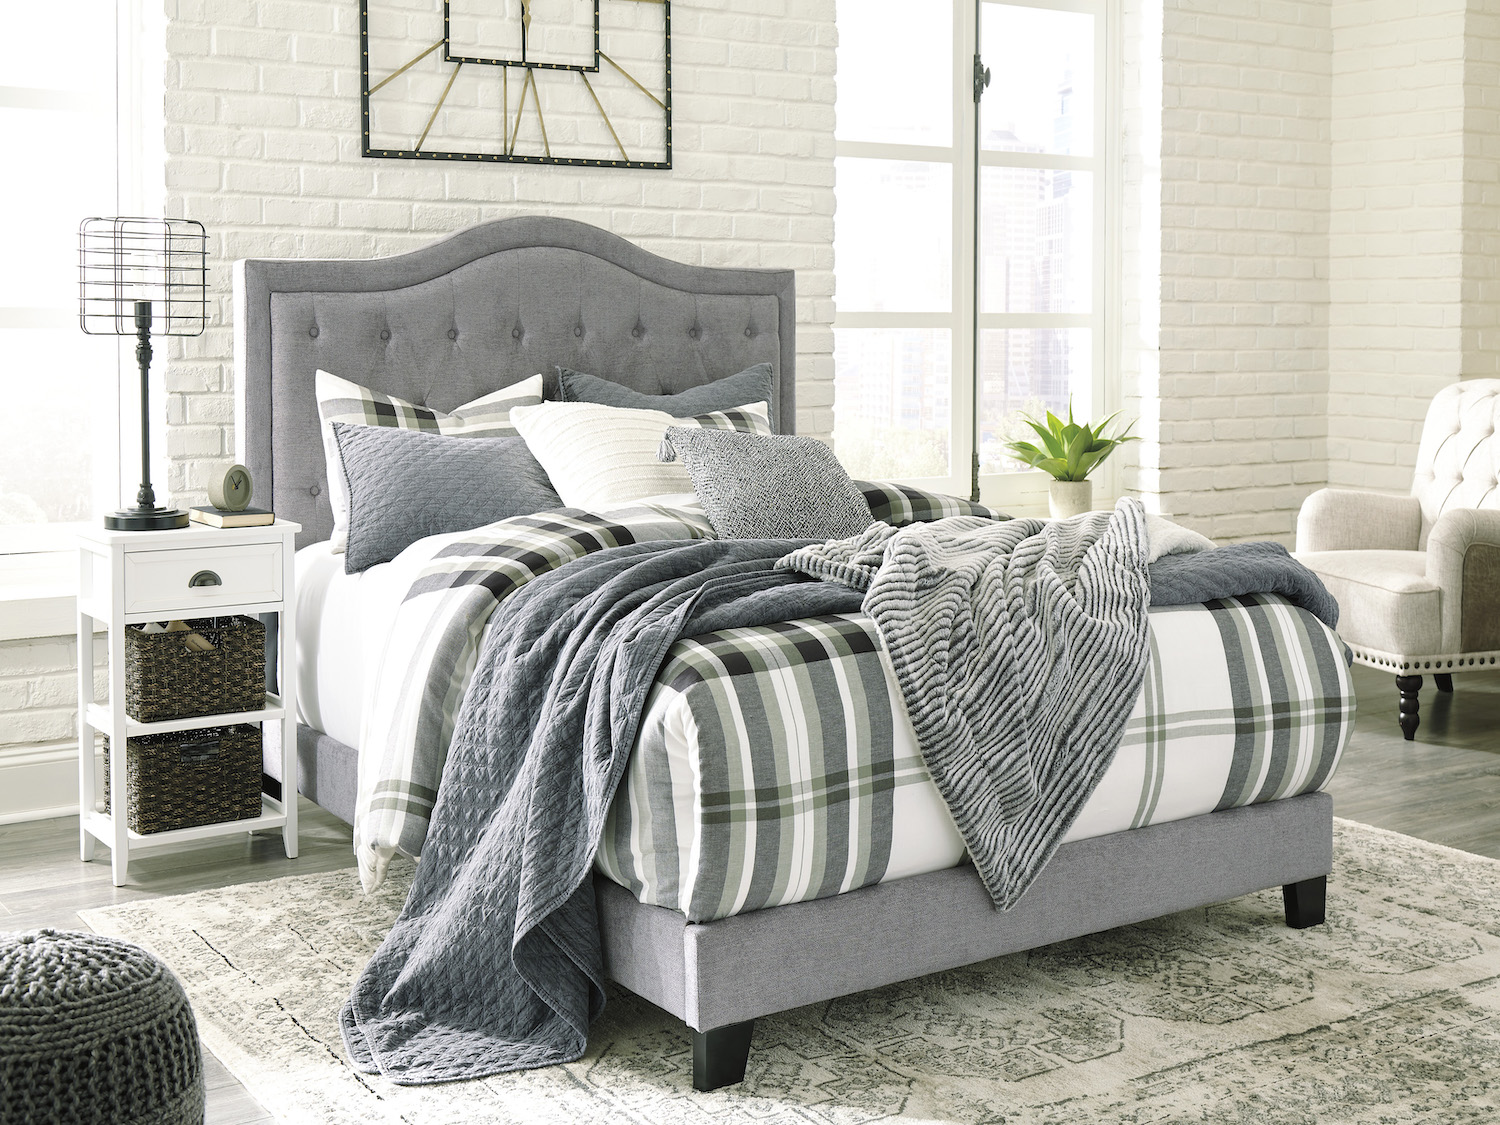 Jerary Queen Bed- Gray, B090-381, Beds, Jerary Queen Bed- Gray from Ashley by Midha Furniture serving Brampton, Mississauga, Etobicoke, Toronto, Scraborough, Caledon, Cambridge, Oakville, Markham, Ajax, Pickering, Oshawa, Richmondhill, Kitchener, Hamilton, Cambridge, Waterloo and GTA area